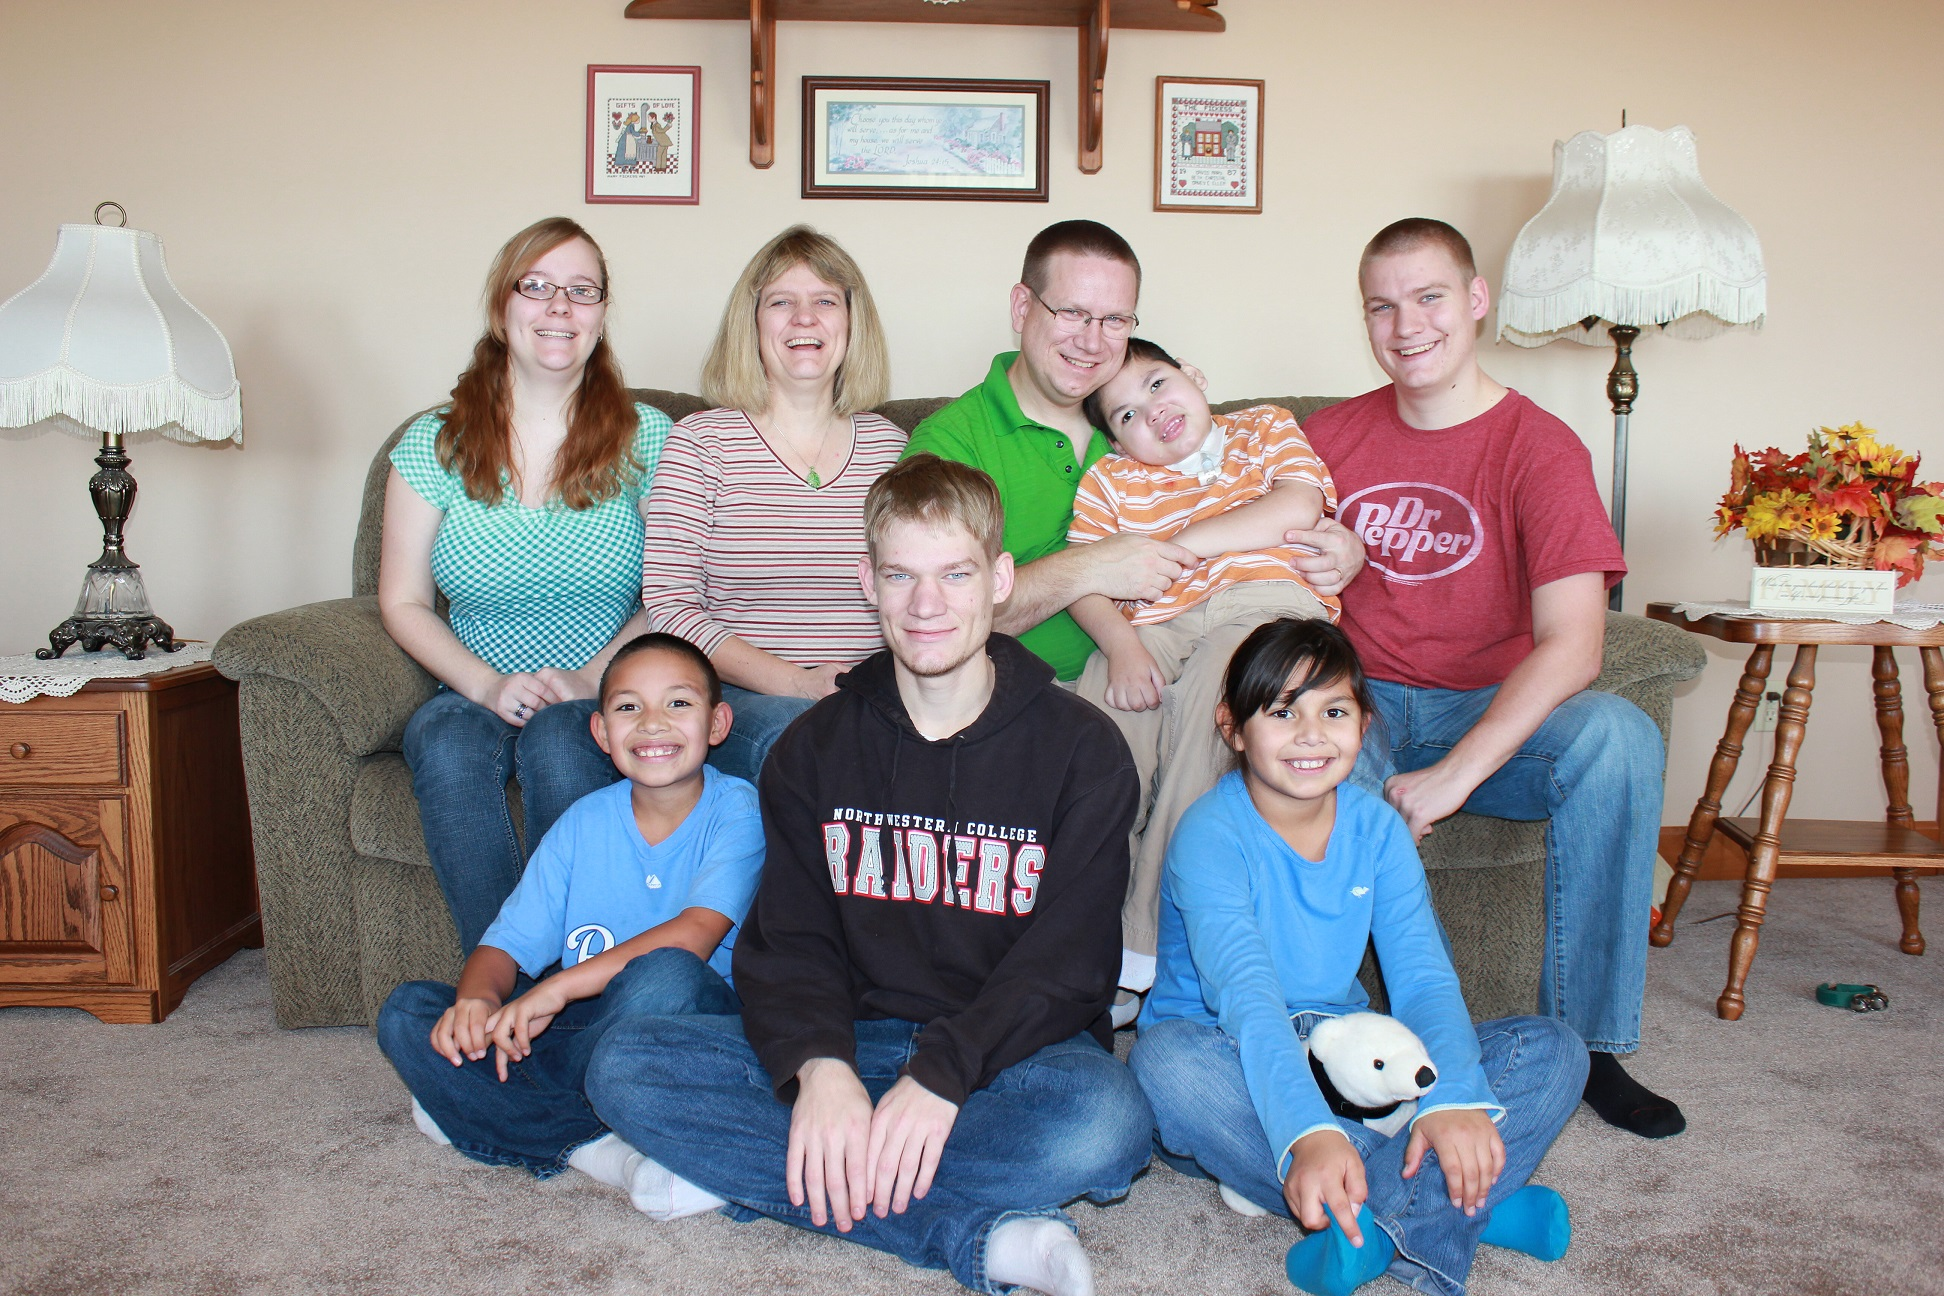 Photo: A Family of eight pose in their living room for a photo